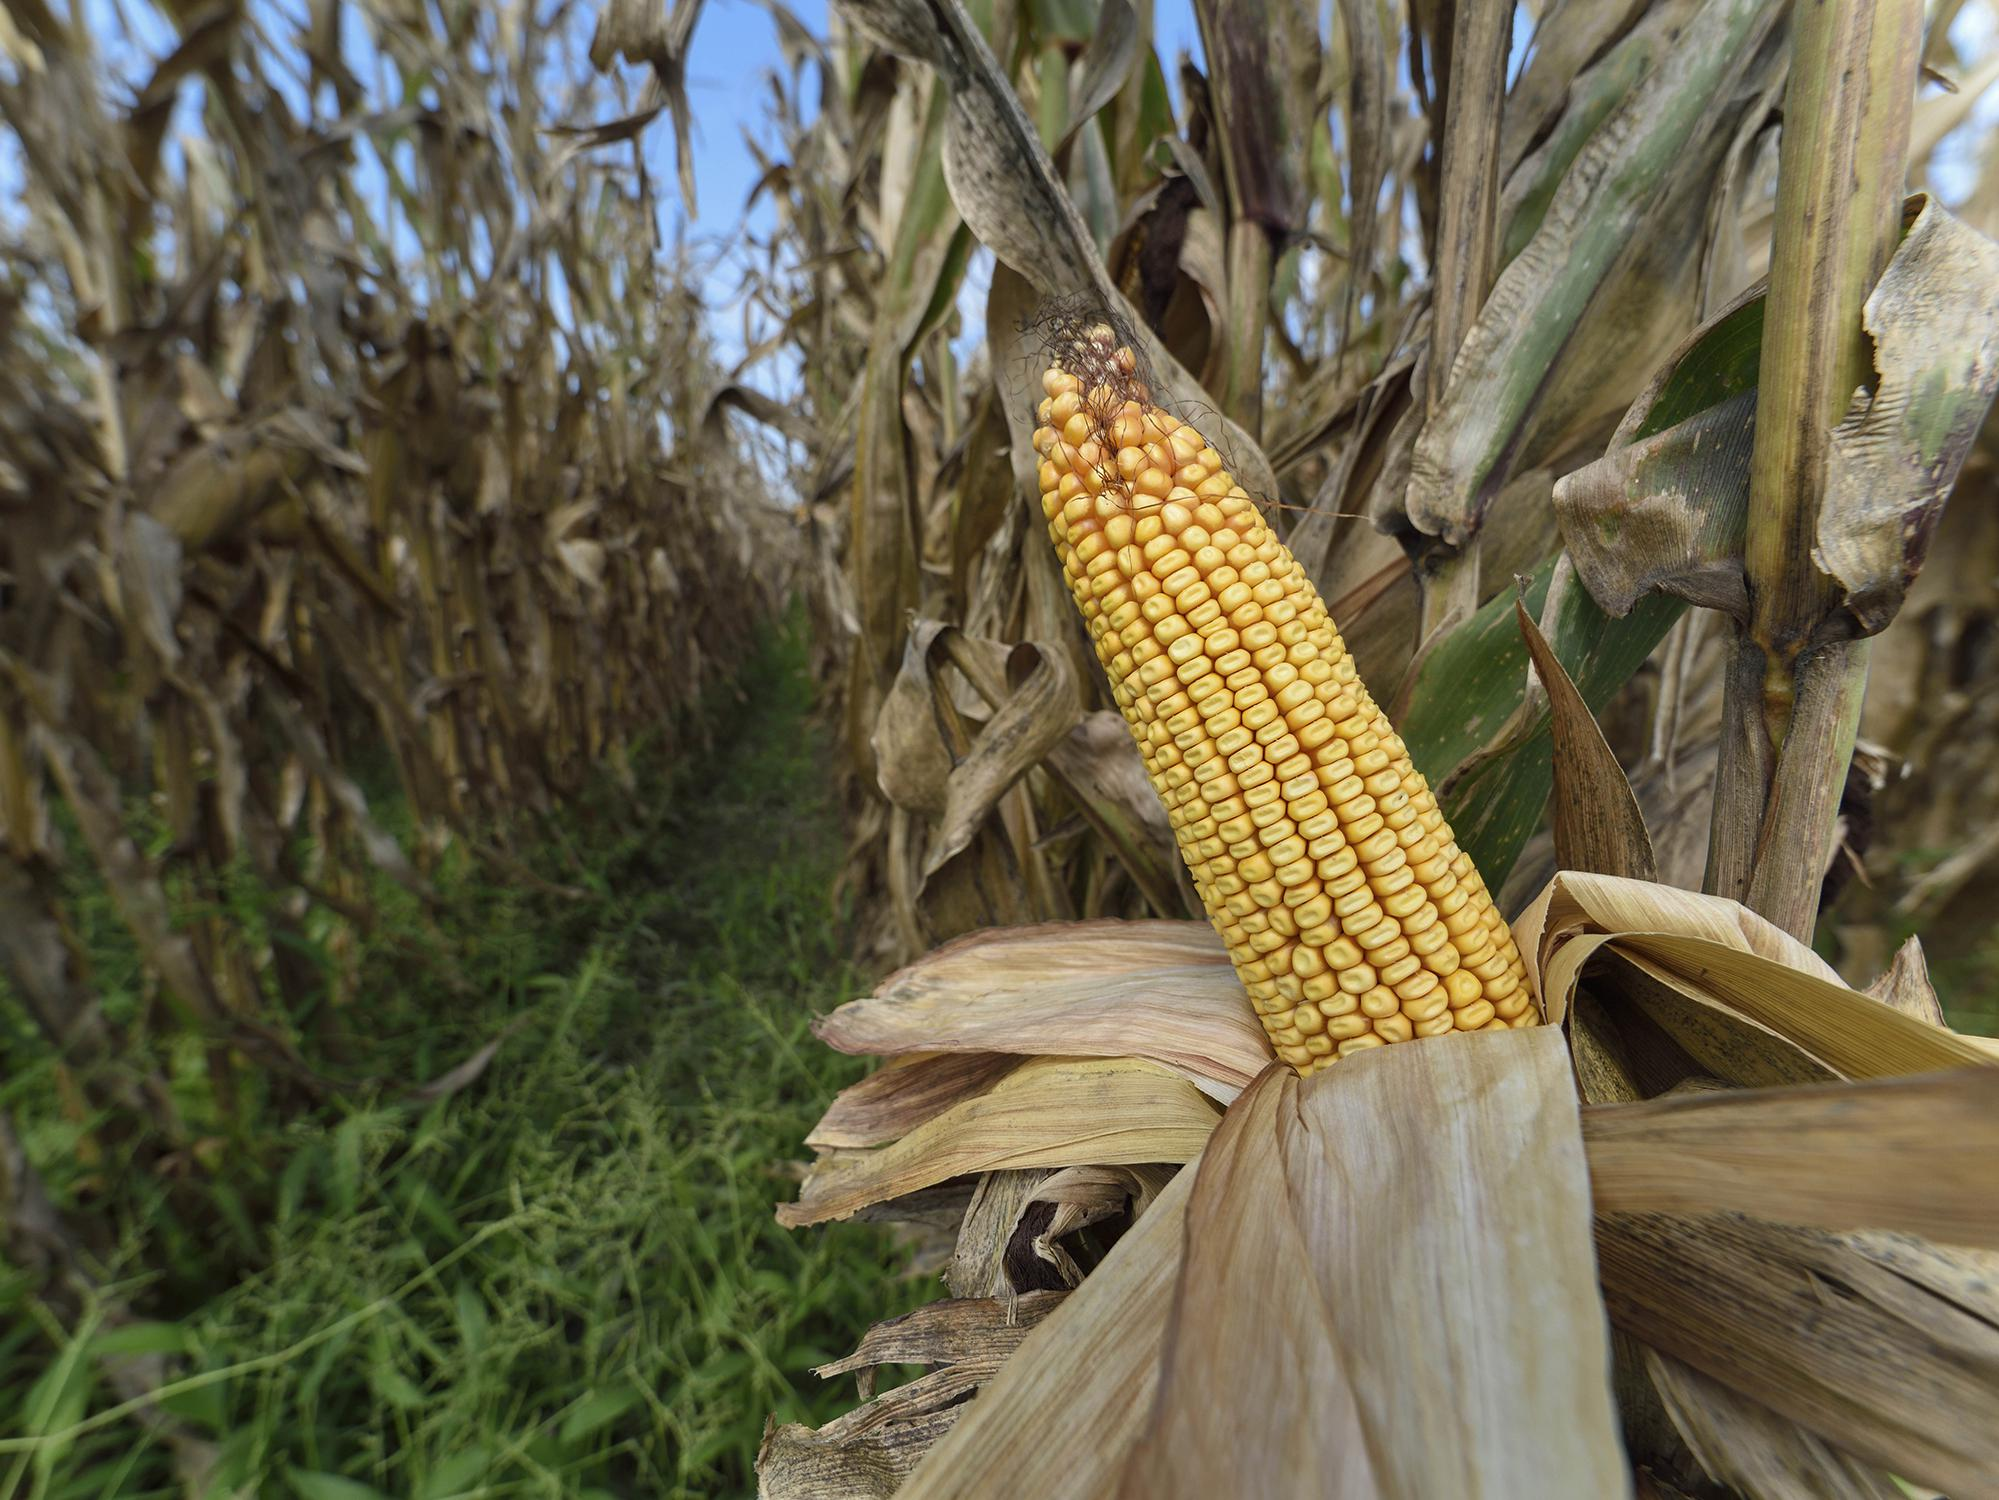 A golden ear of corn with the husks pulled back is attached to a dried stalk in a cornfield.